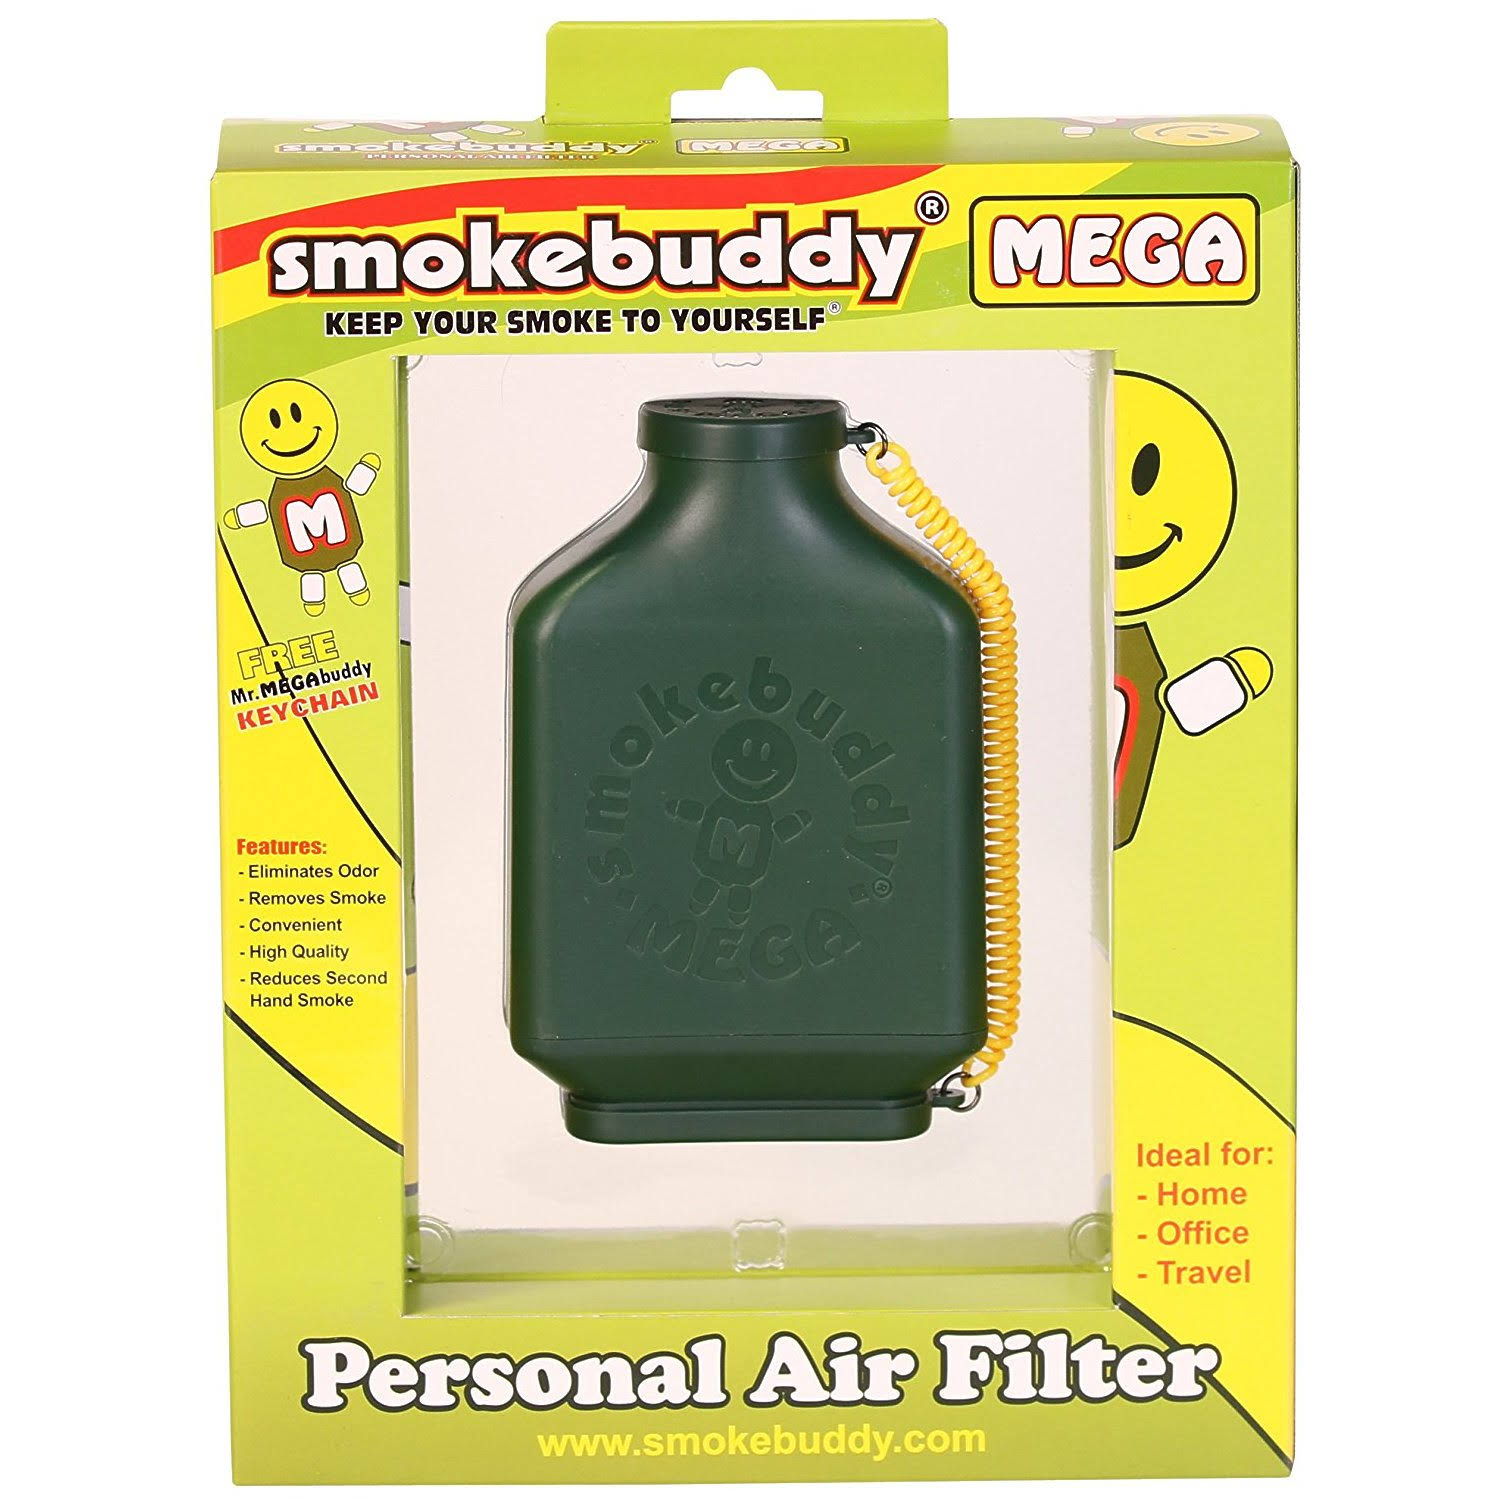 Smoke Buddy Mega Personal Air Purifier Cleaner Filter Removes Odor - Green